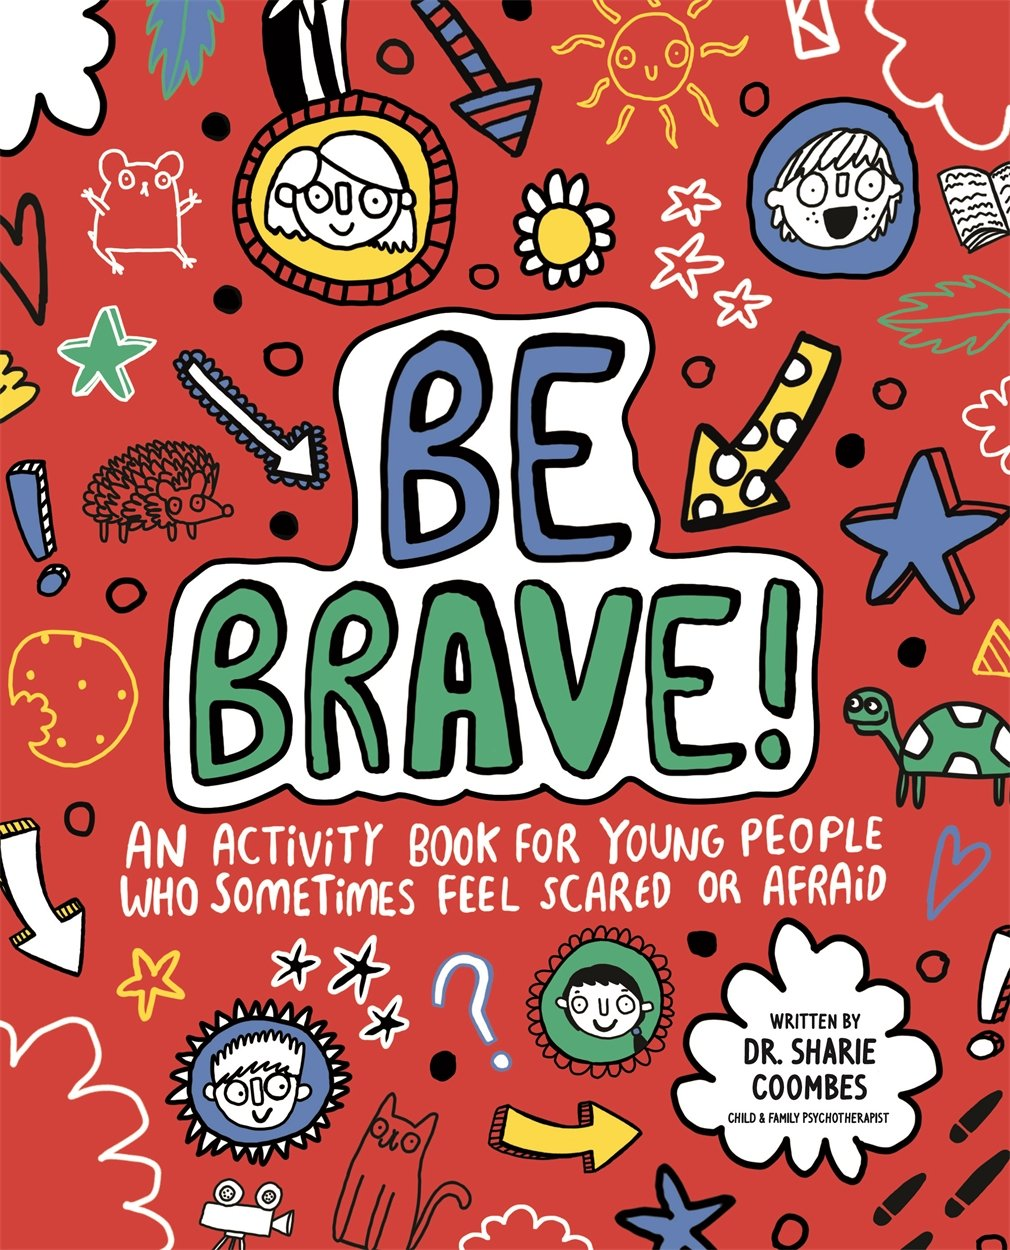 Be Brave! An Activity Book for Young People who Sometimes Feel Scared or Afraid (Book by Dr. Sharie Coombes)